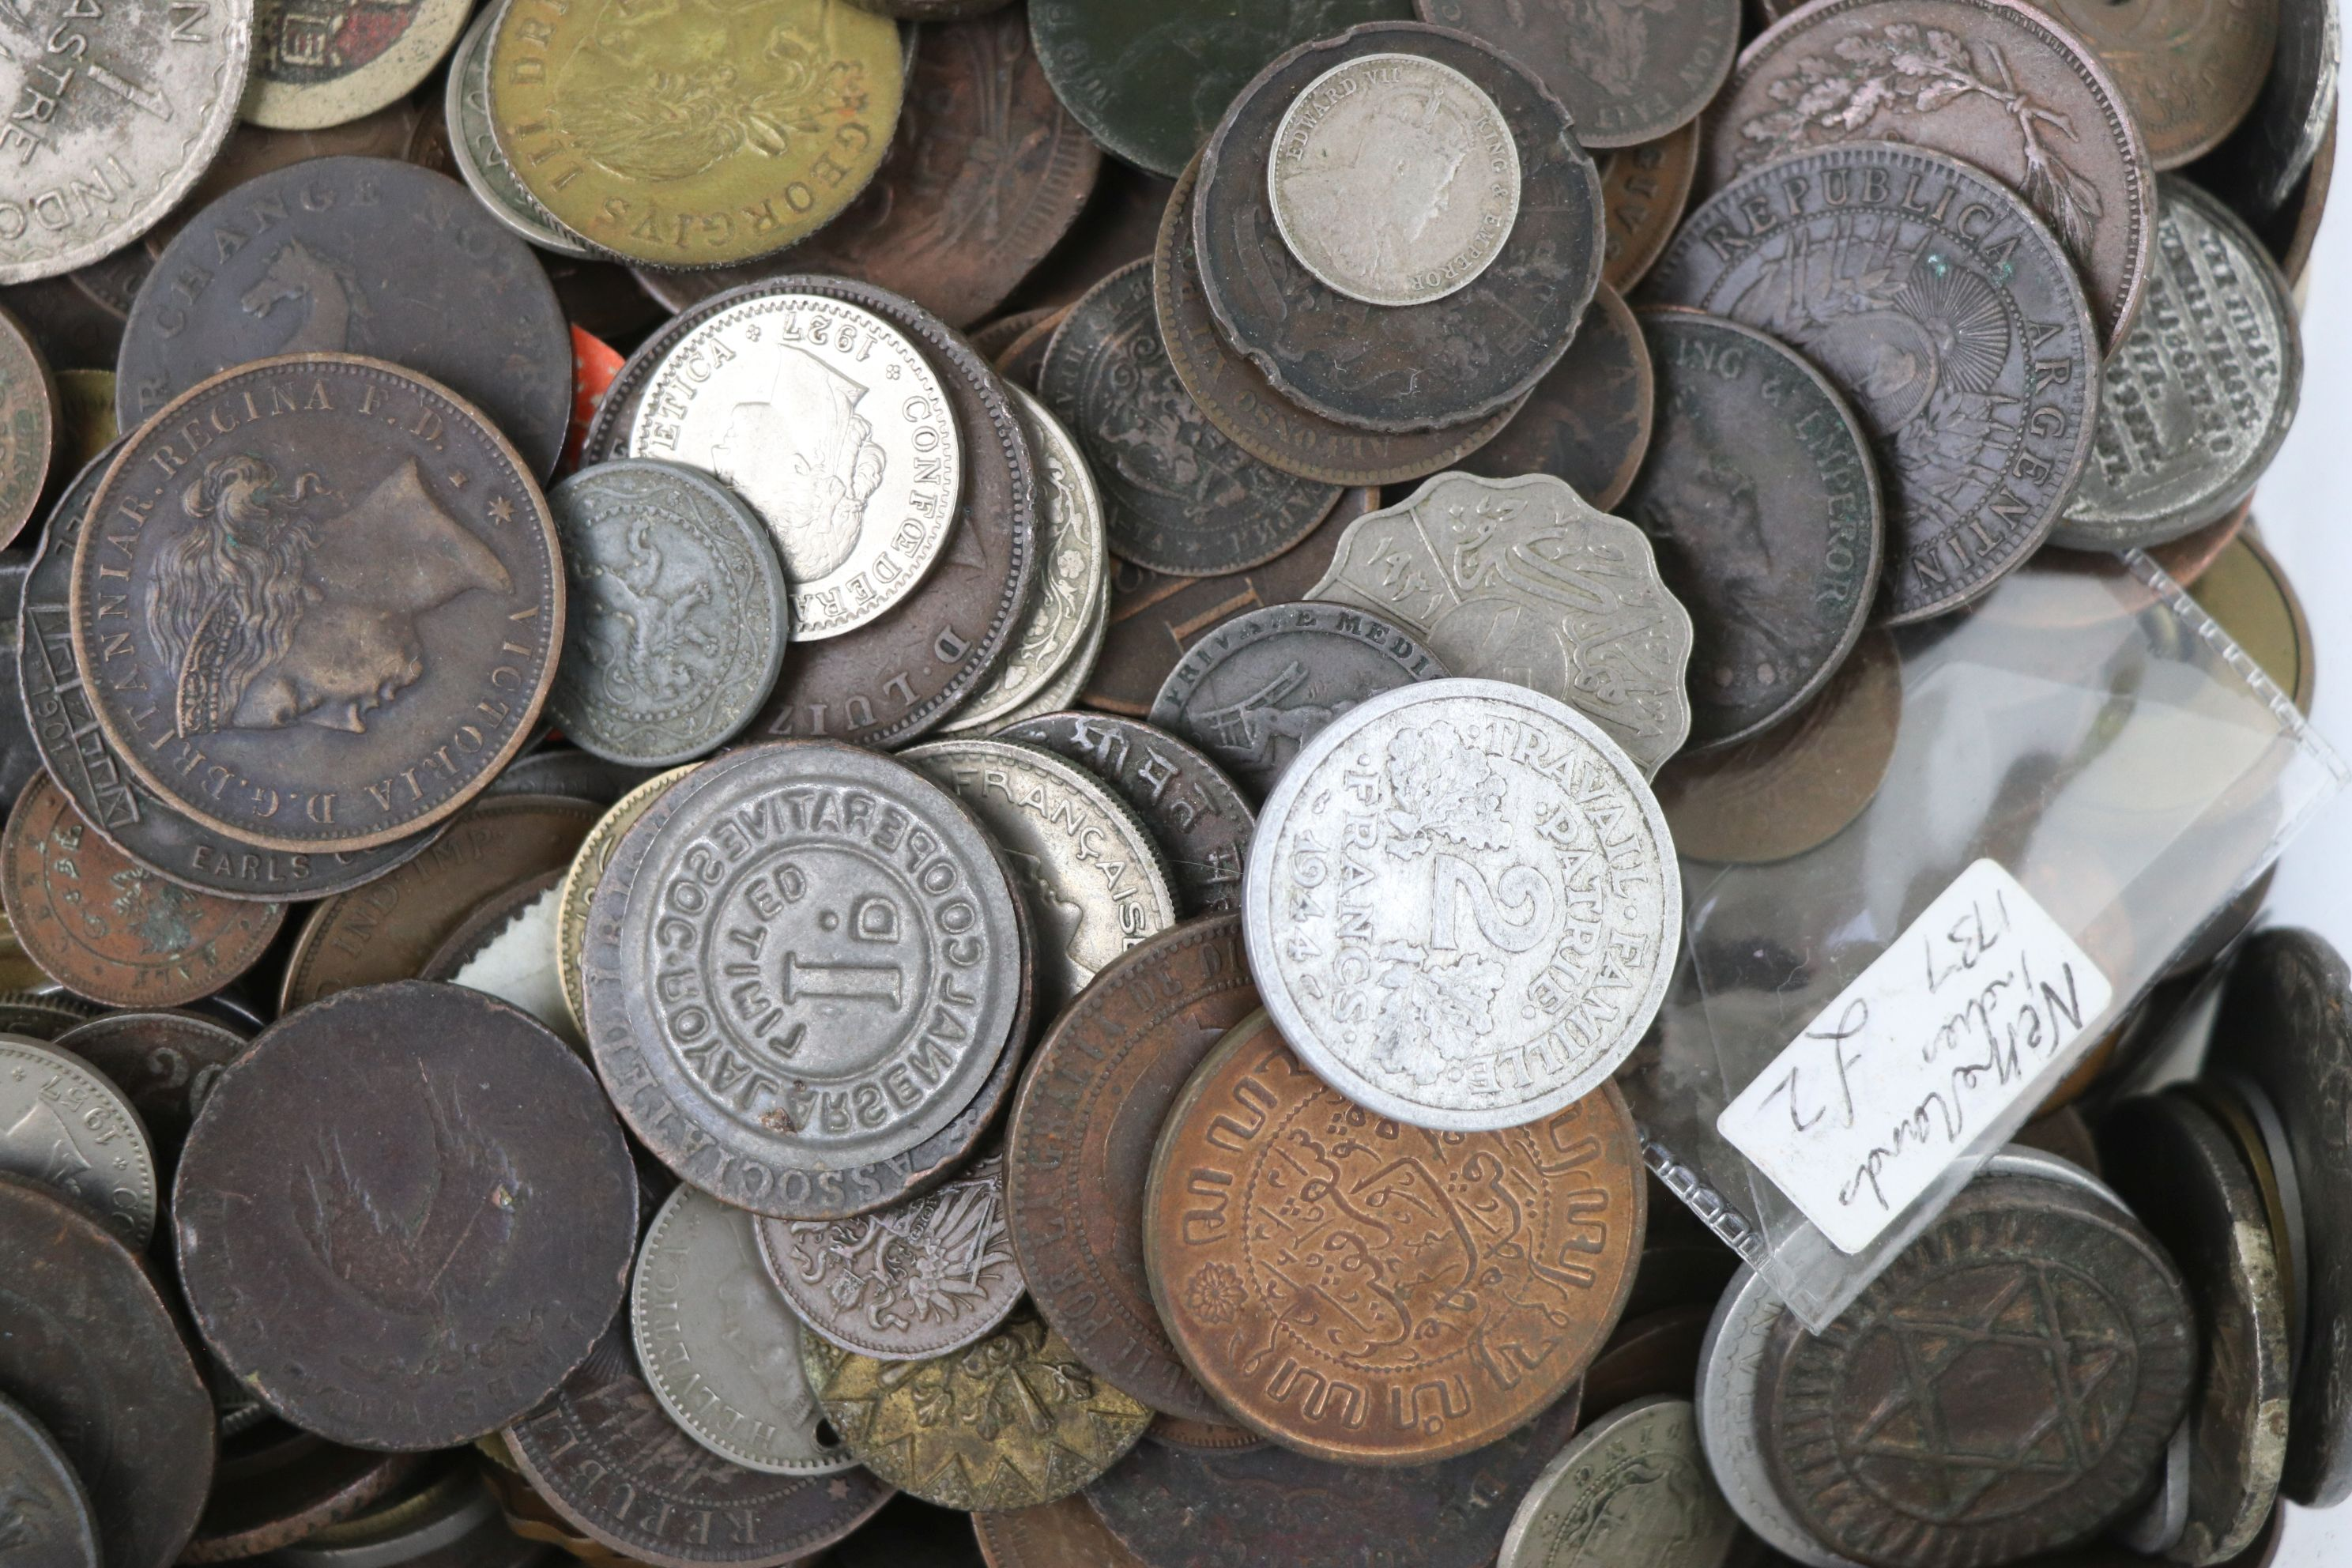 A large collection of British and World coins to include silver examples. - Image 10 of 10